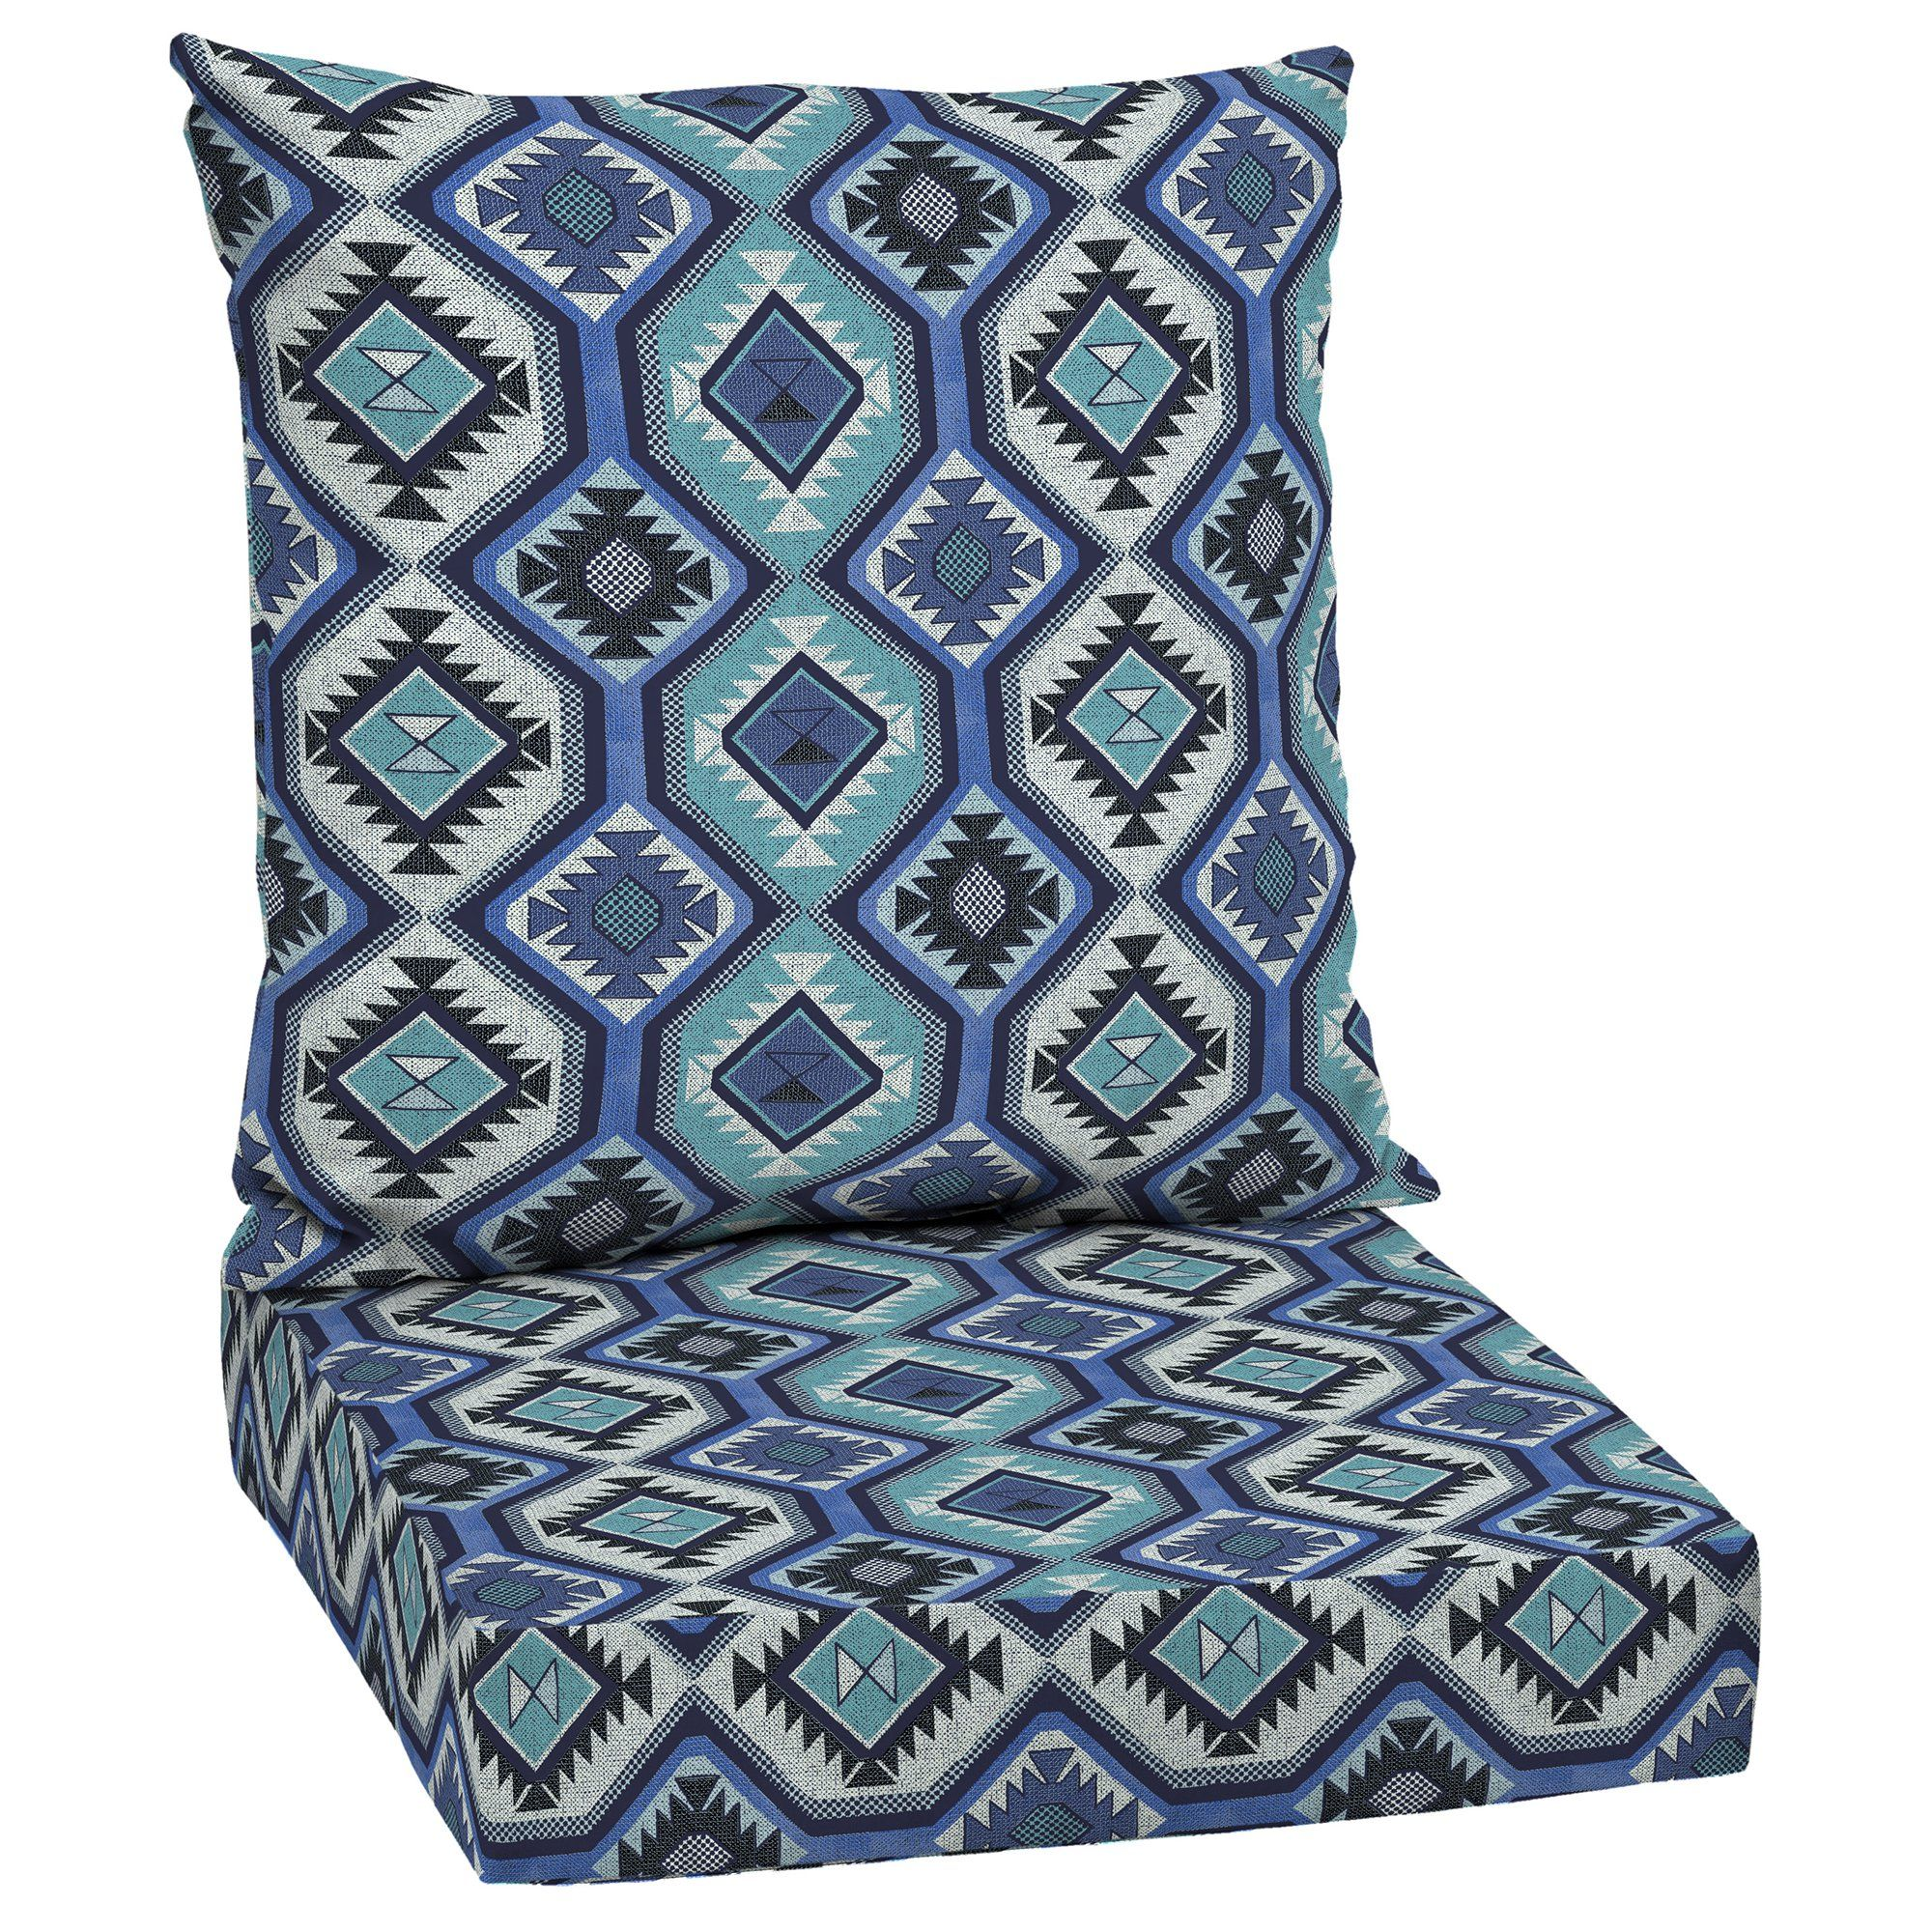 Mainstays Blue Southwest 48 x 24 in. Outdoor Deep Seat